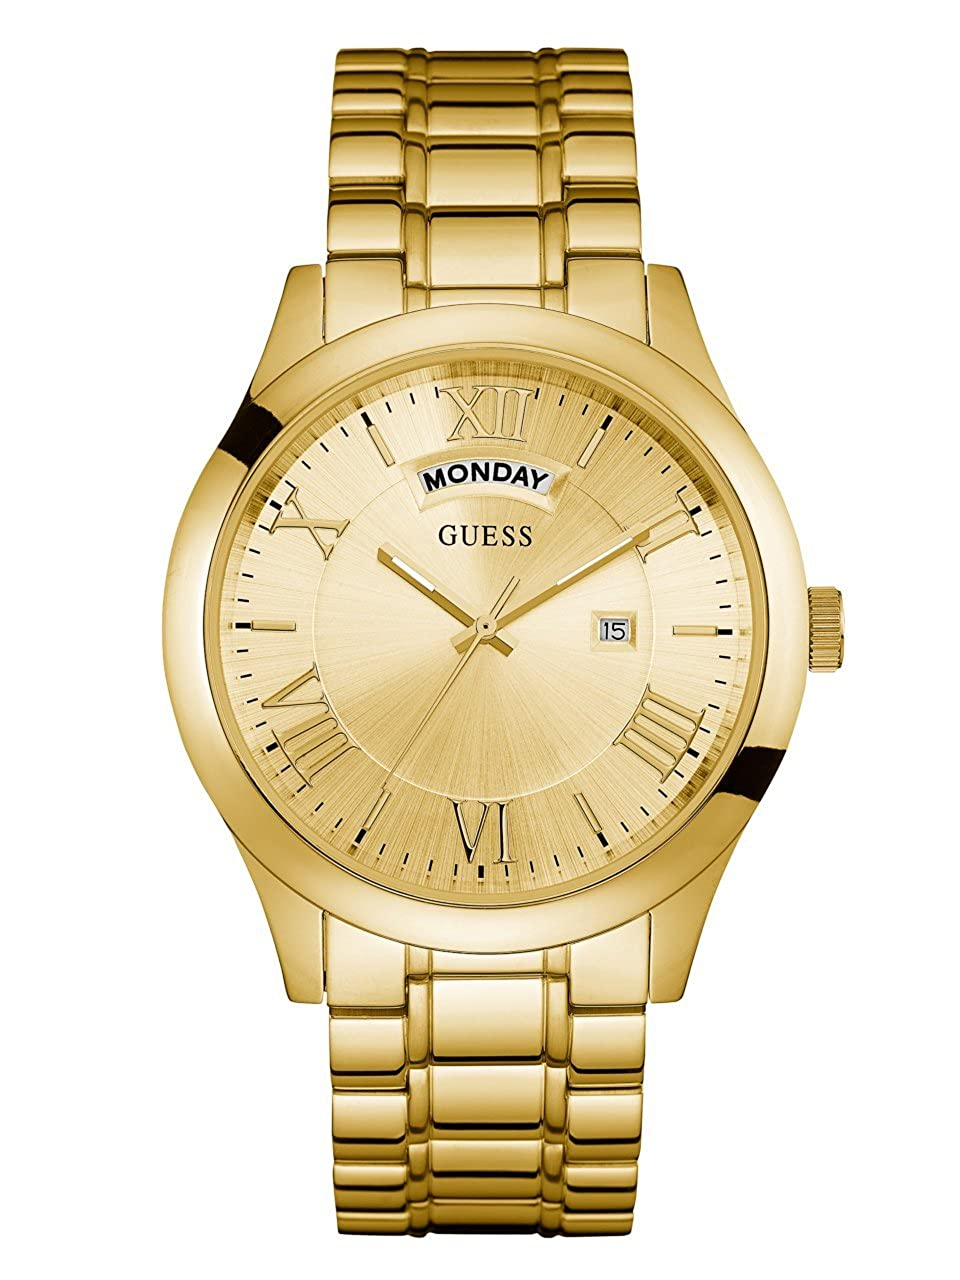 GUESS Men s Stainless Steel Casual Bracelet Watch with Day and Date Display